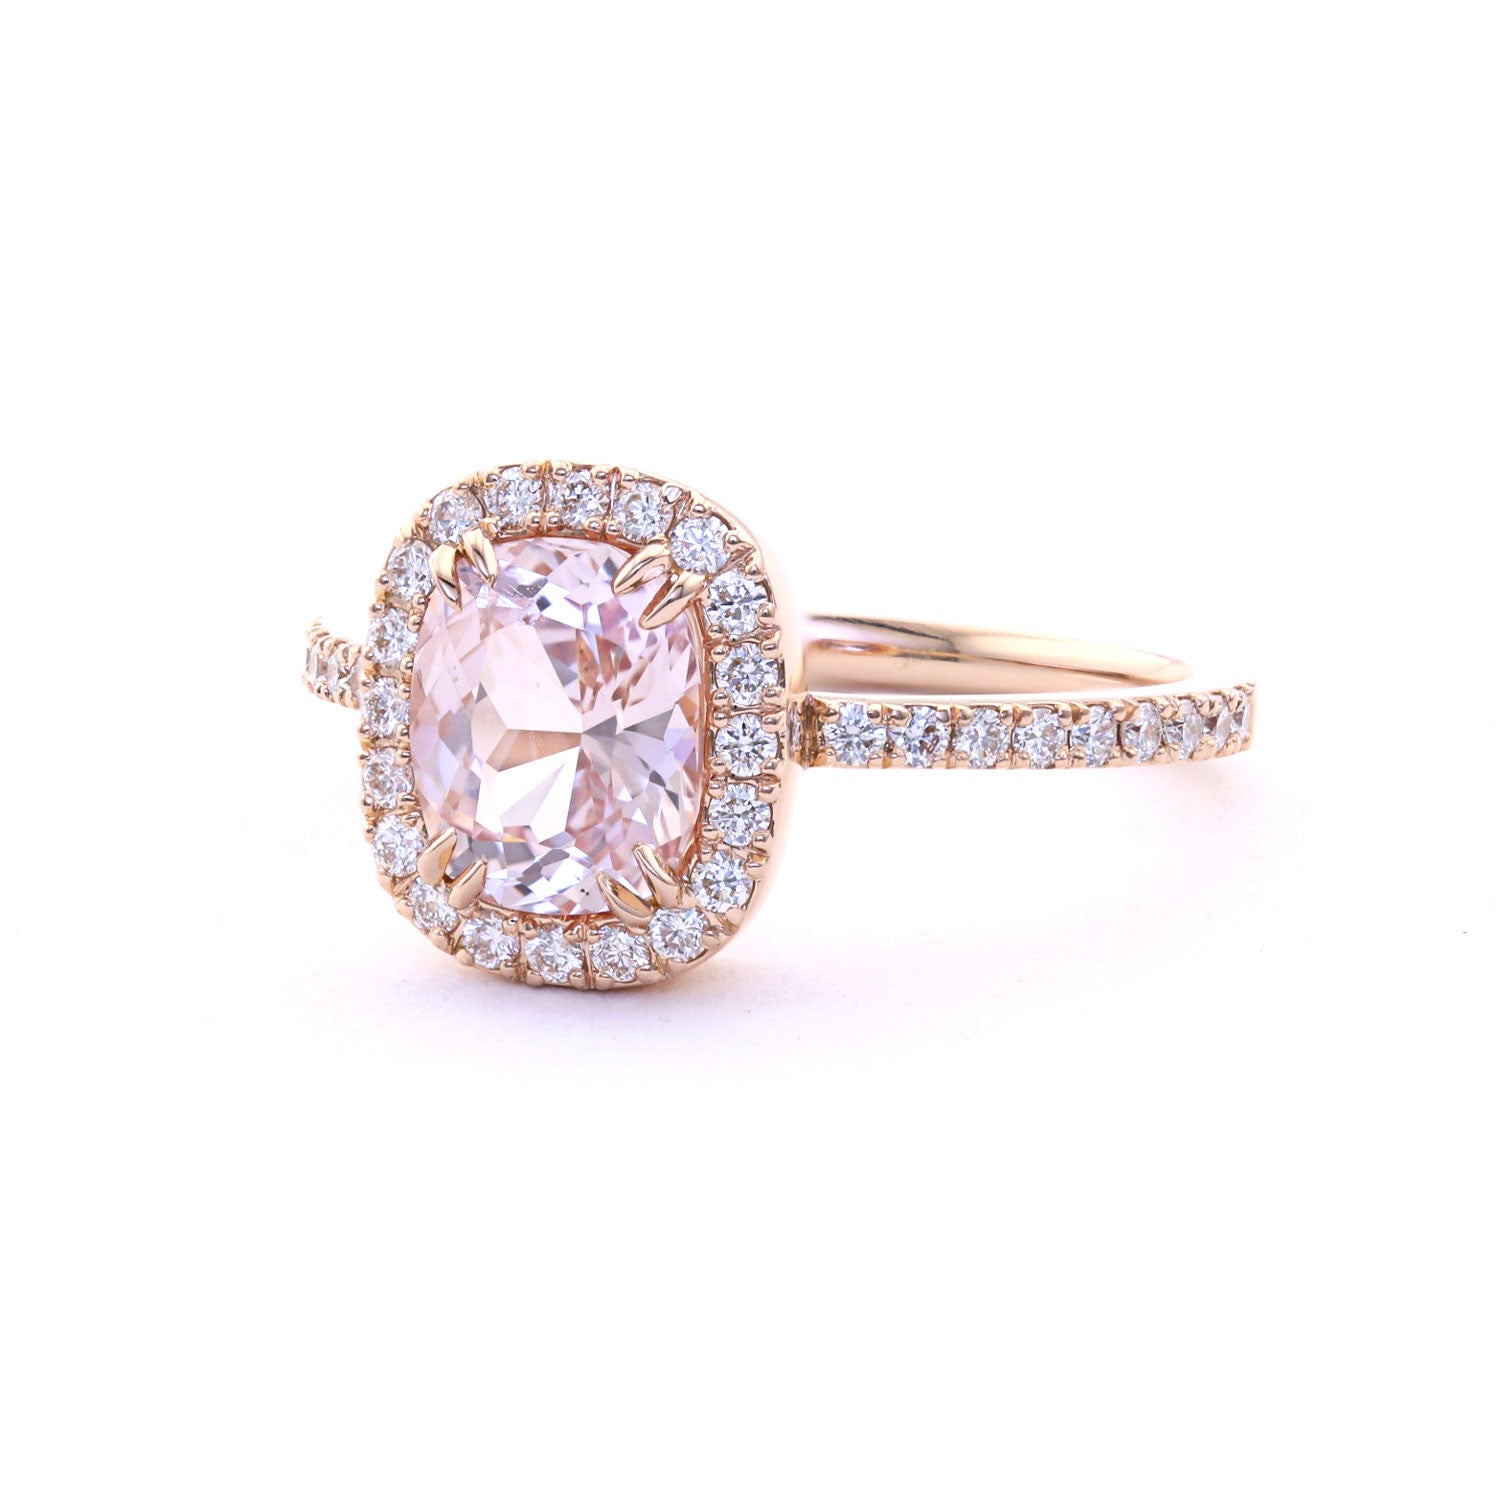 a ringszoe alternate find individual weddings alternative rings life truly engagement places to